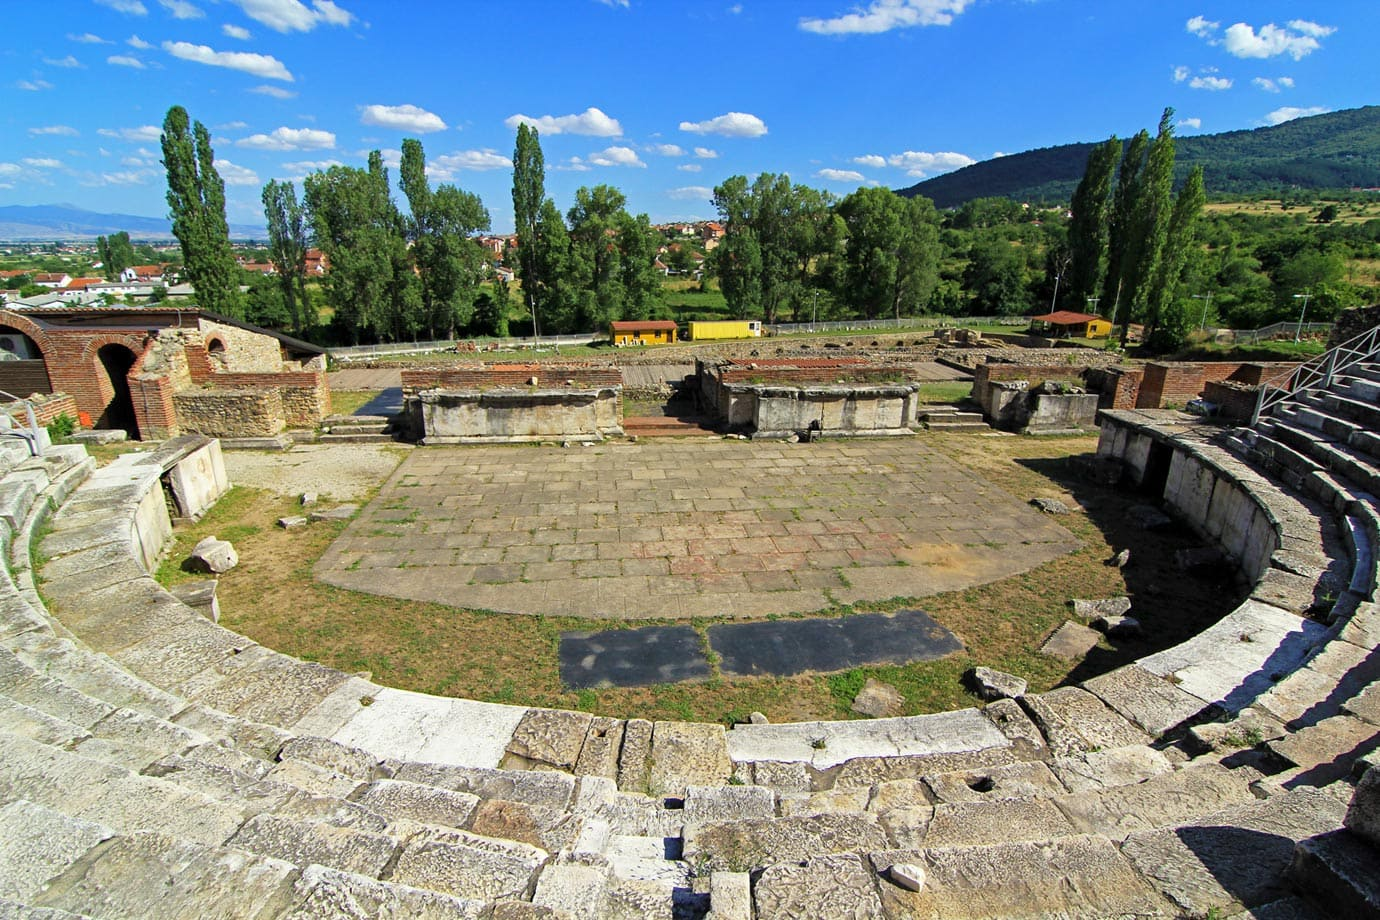 The real eye-draw of the ancient city is the theatre built by Emperor Hadrian